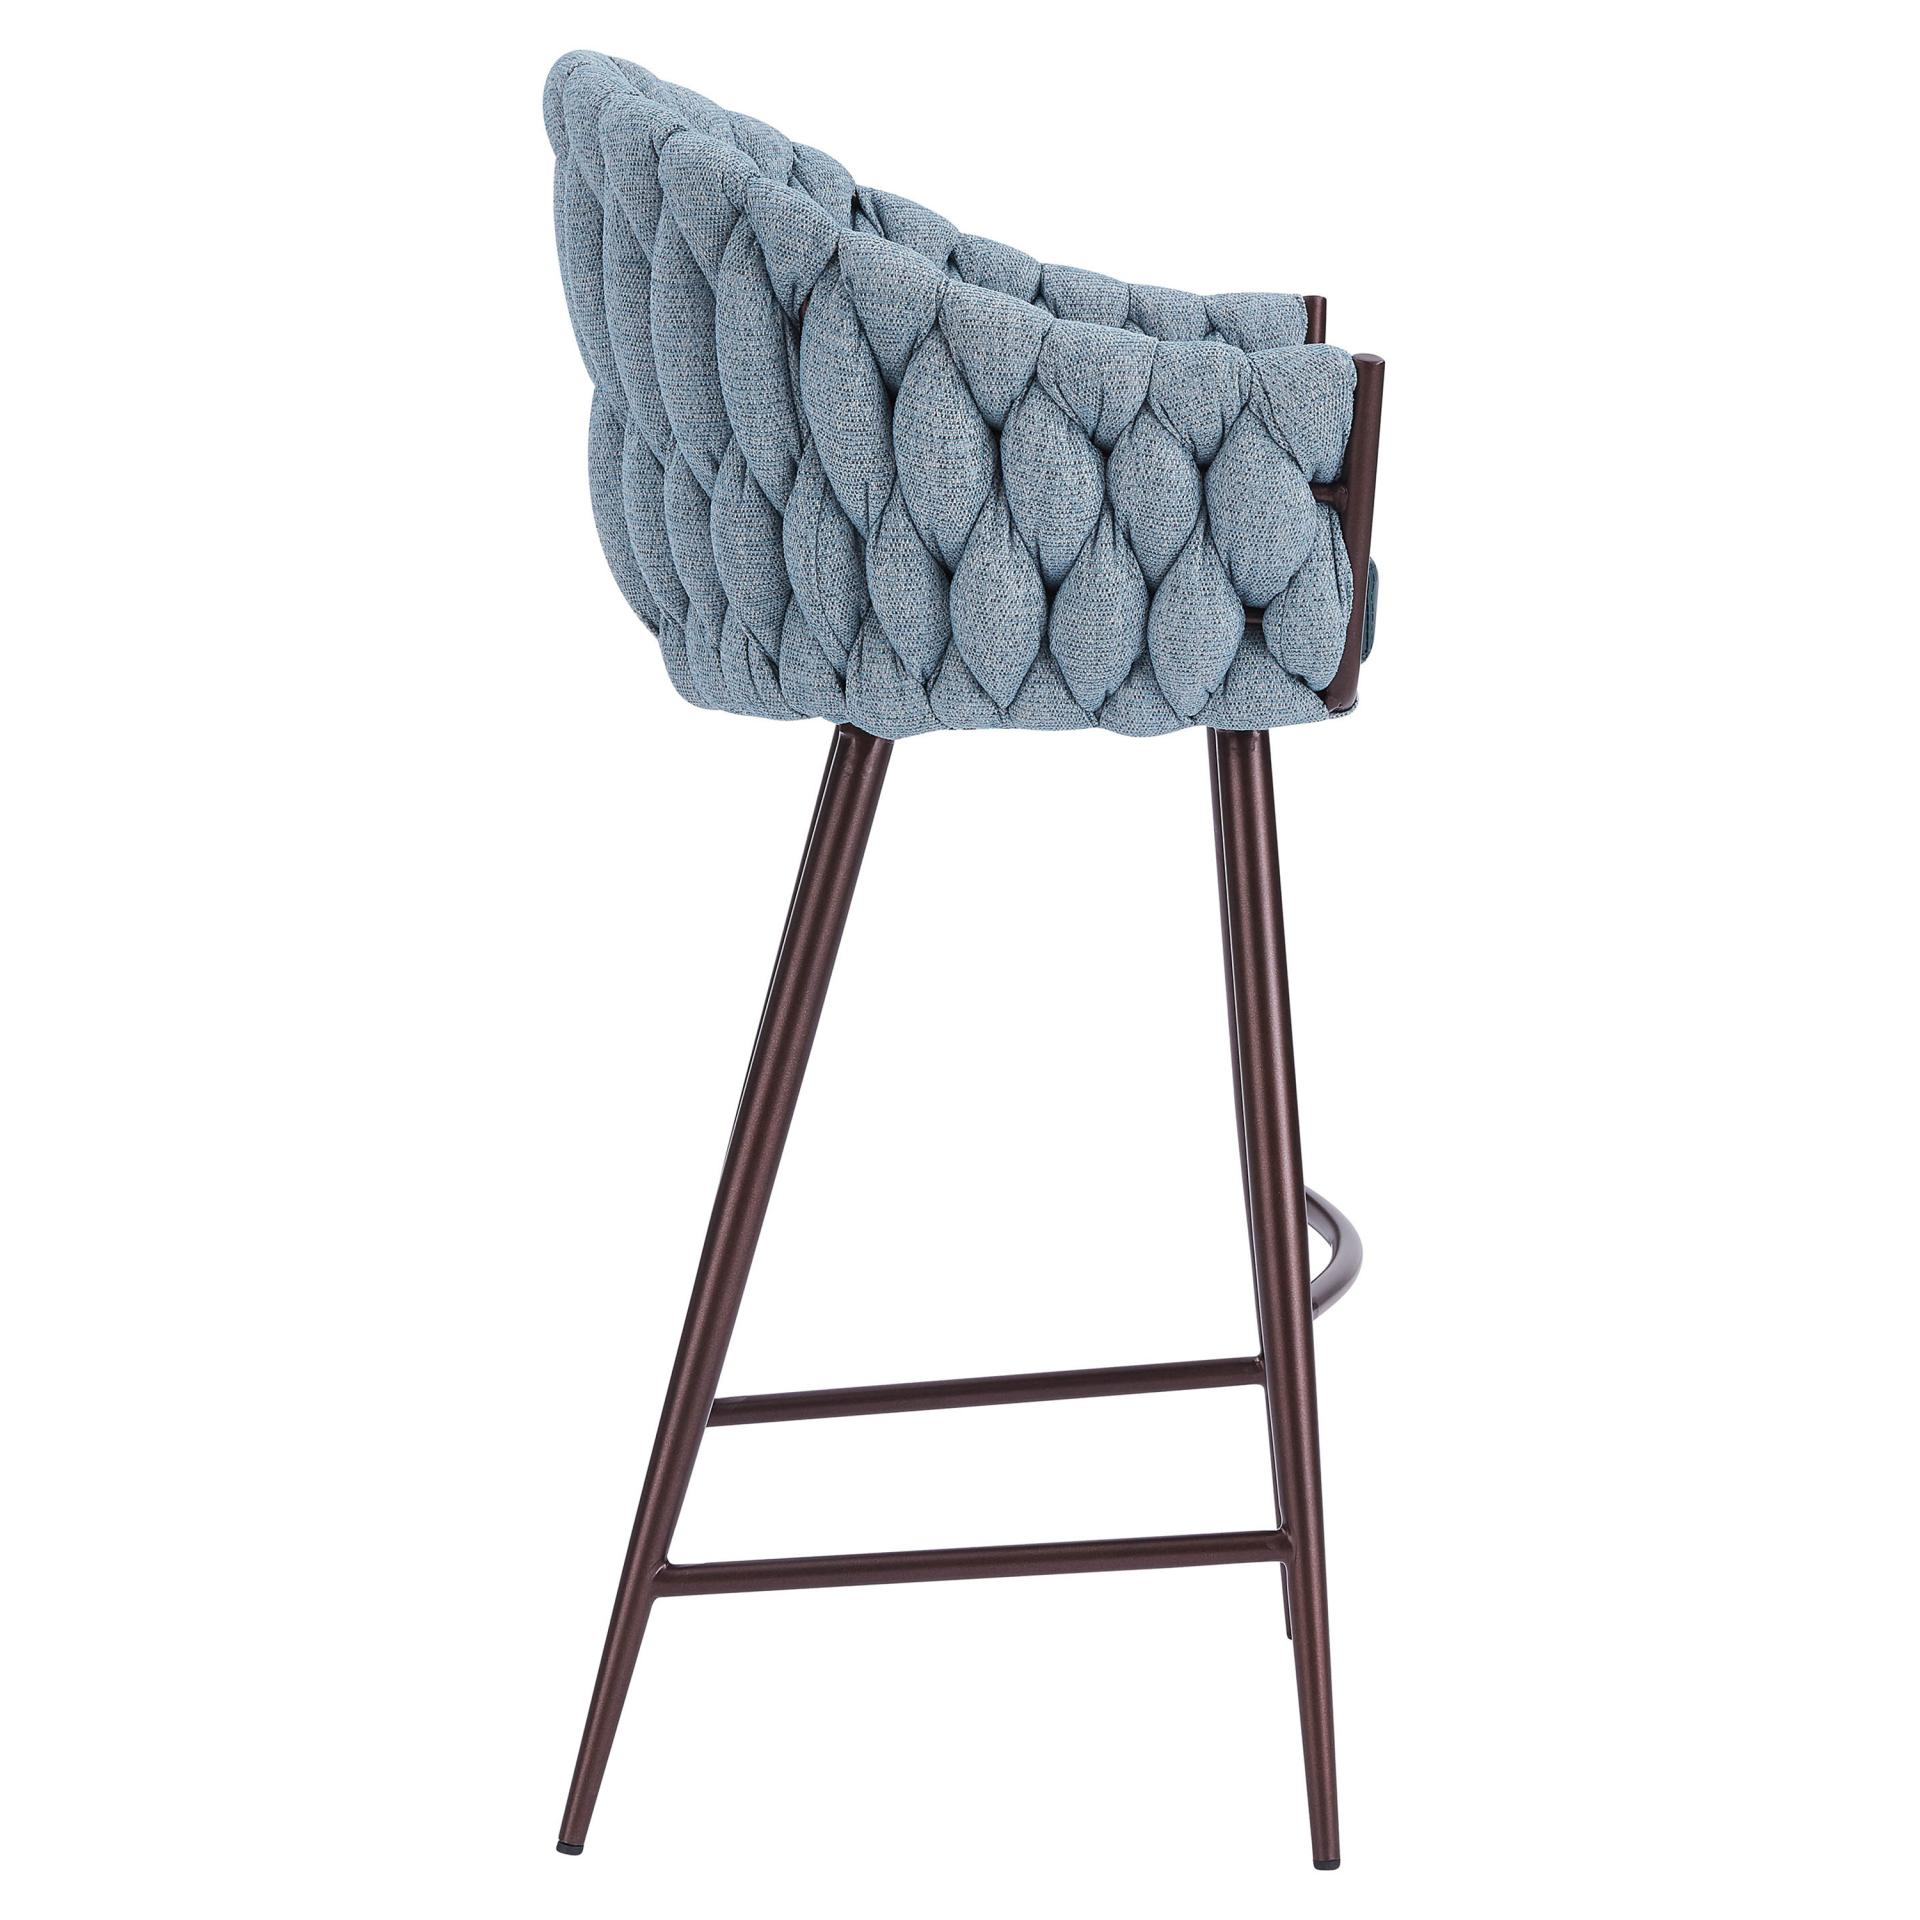 Peachy 1240003 3557 Npd Home Furniture Wholesale Lifestyle Alphanode Cool Chair Designs And Ideas Alphanodeonline